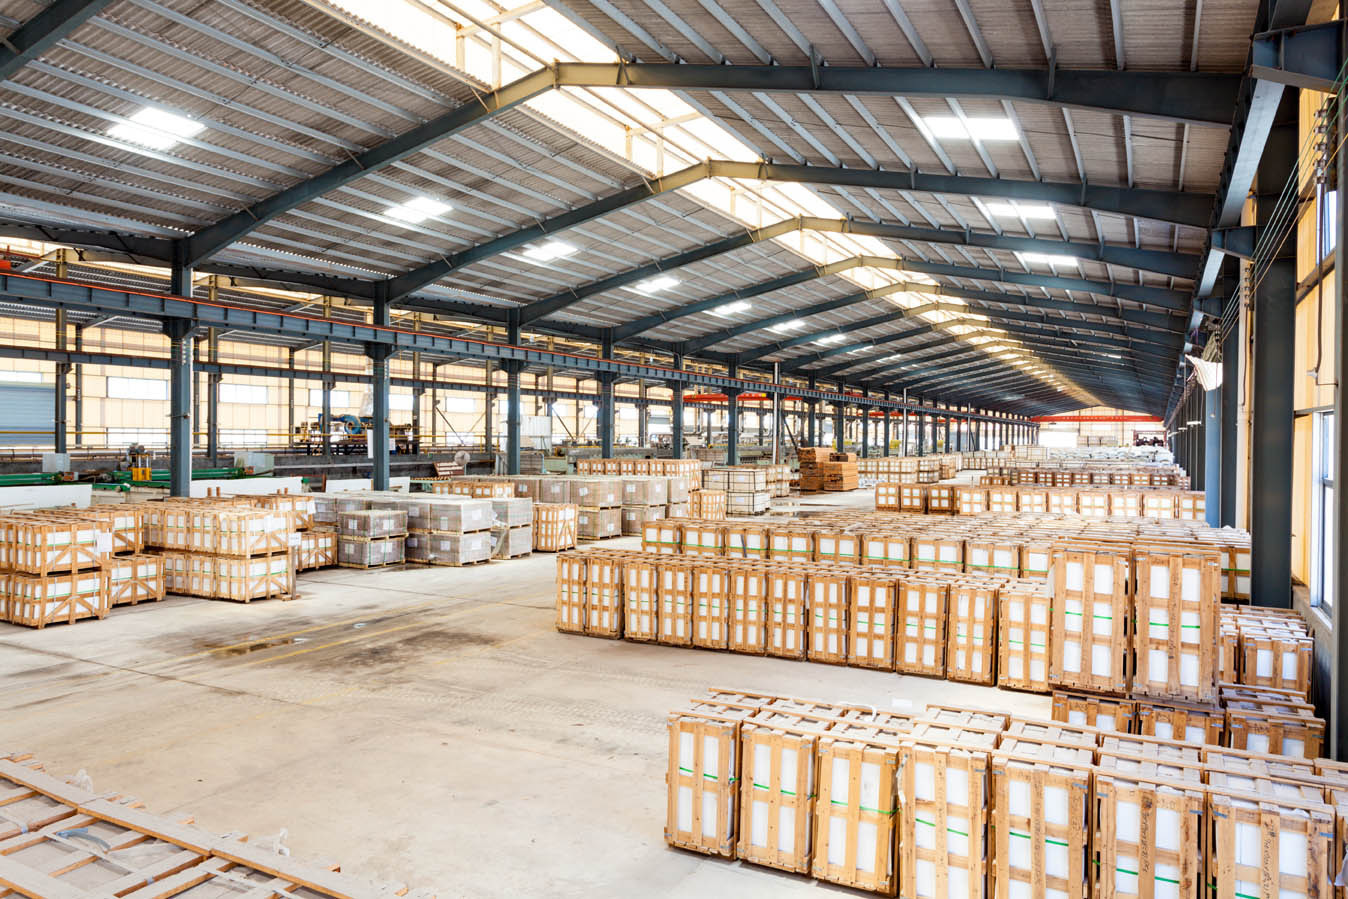 Warehouse Design – Dock High Or Grade Level? Why Not Both